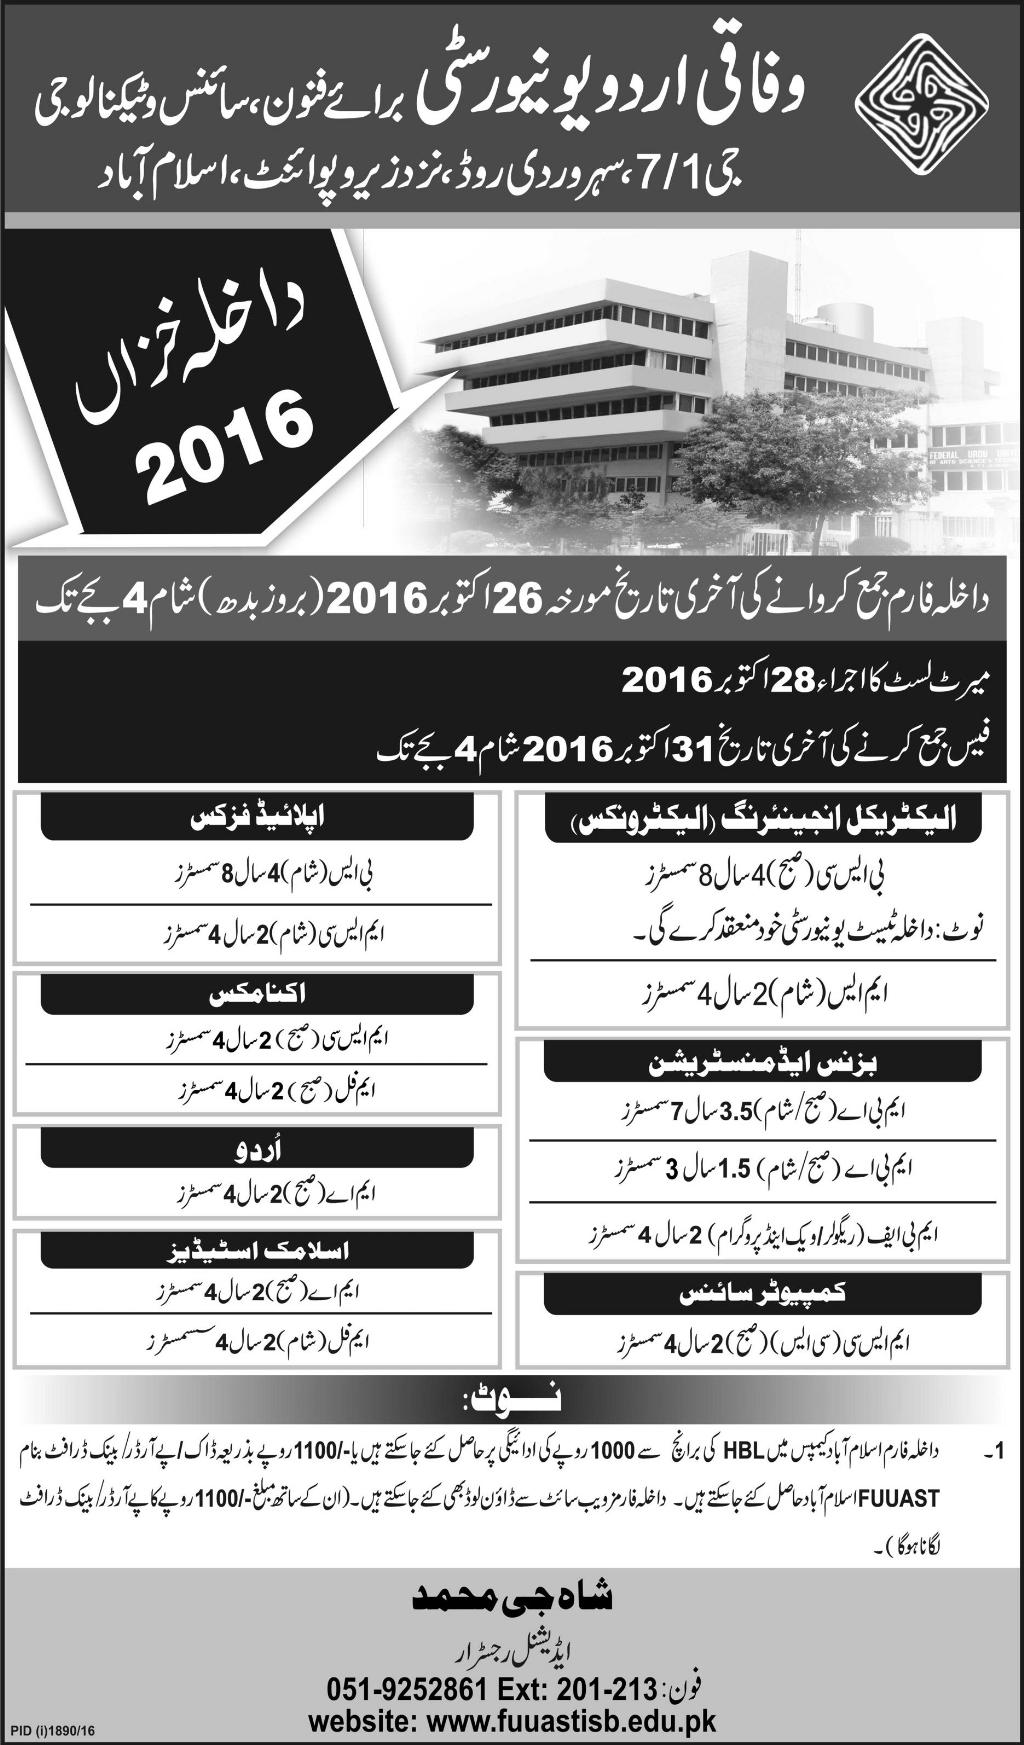 Federal Urdu University Islamabad Admission Autumn 2016 Form, Entry Test Date